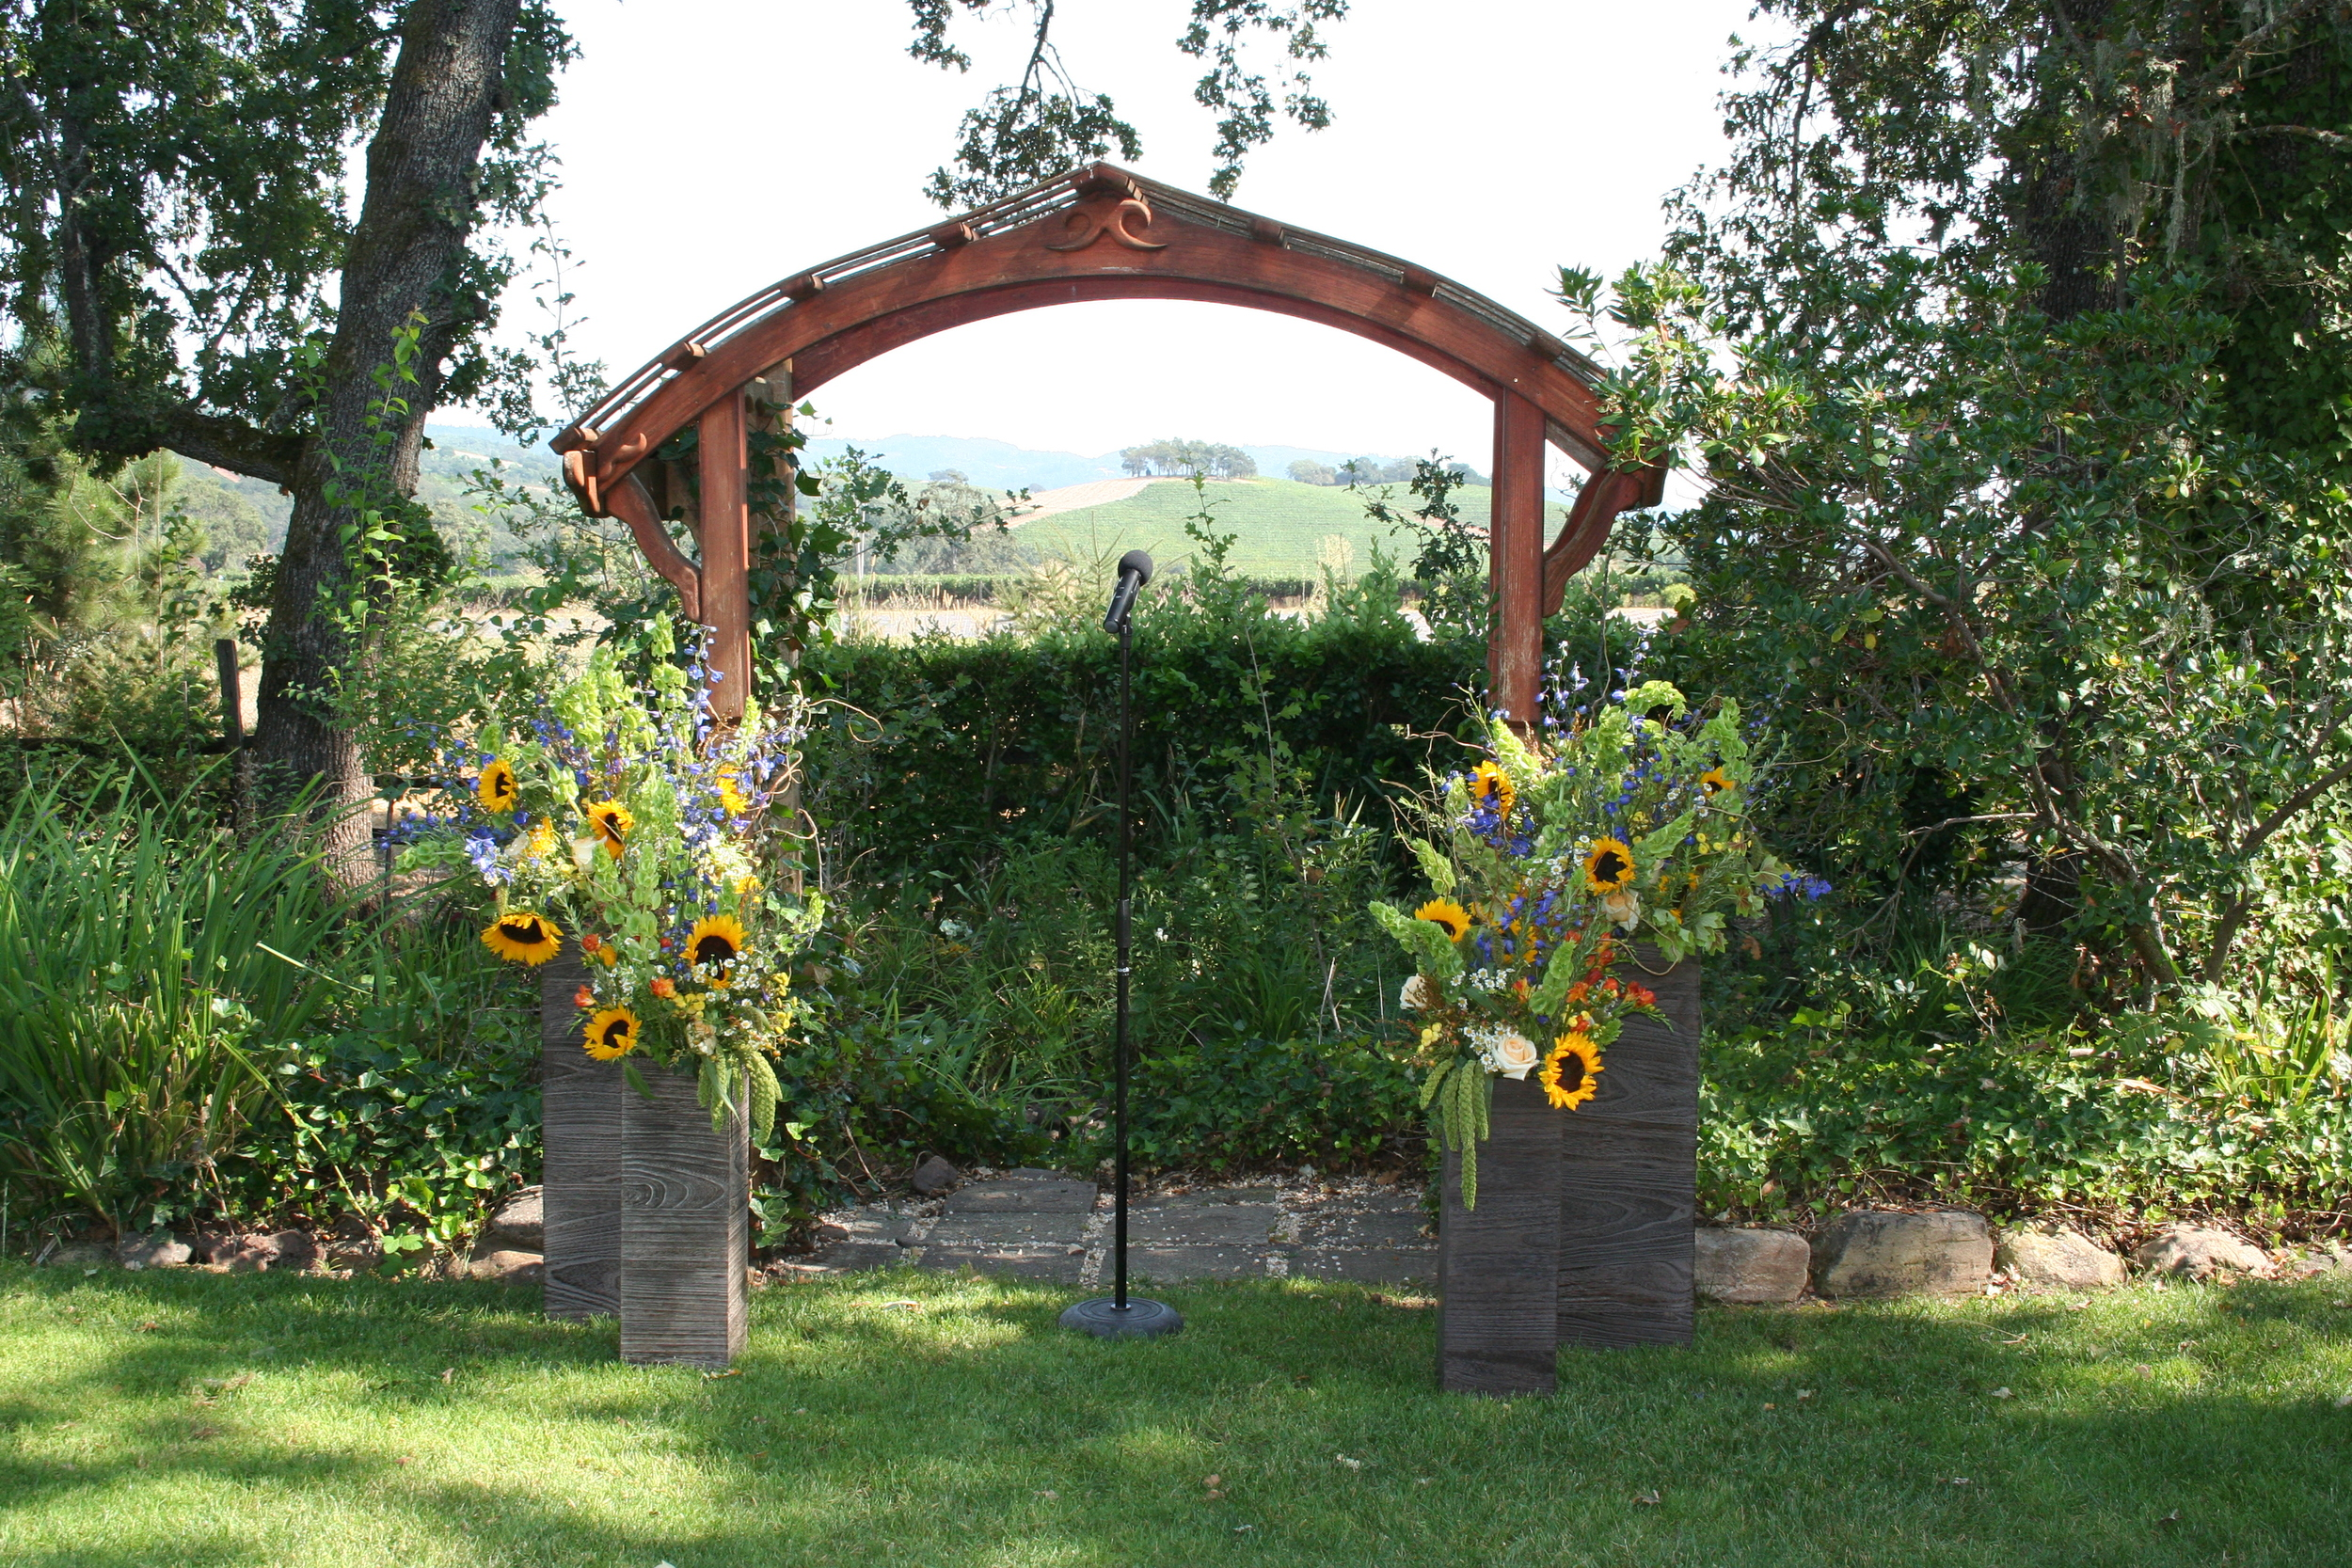 sunflowers waiting for the bride to appear